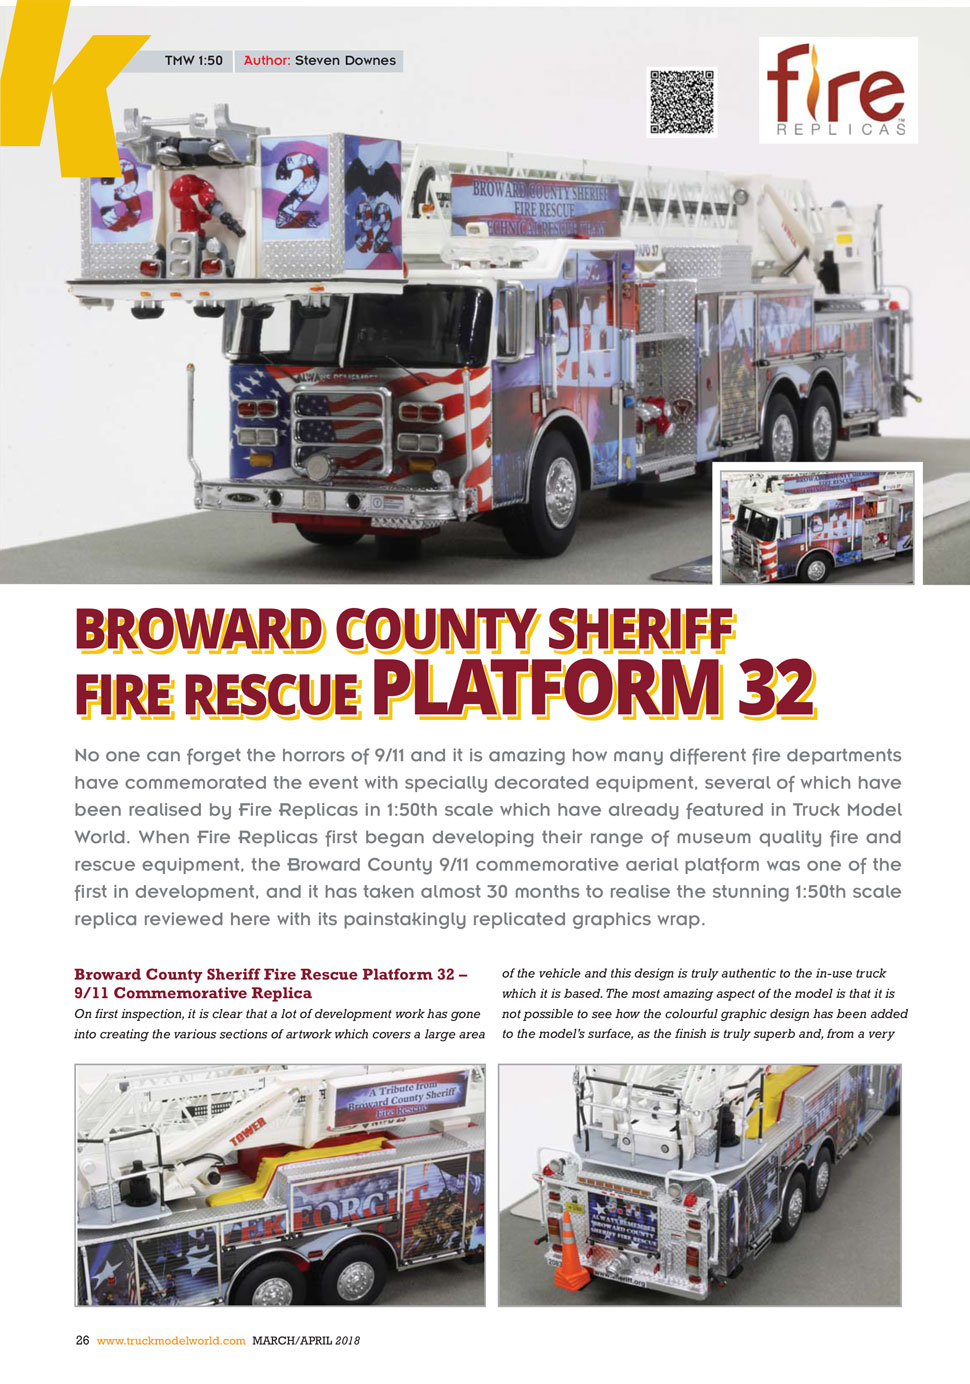 Broward County P32 review as seen in Truck Model World, U.K.